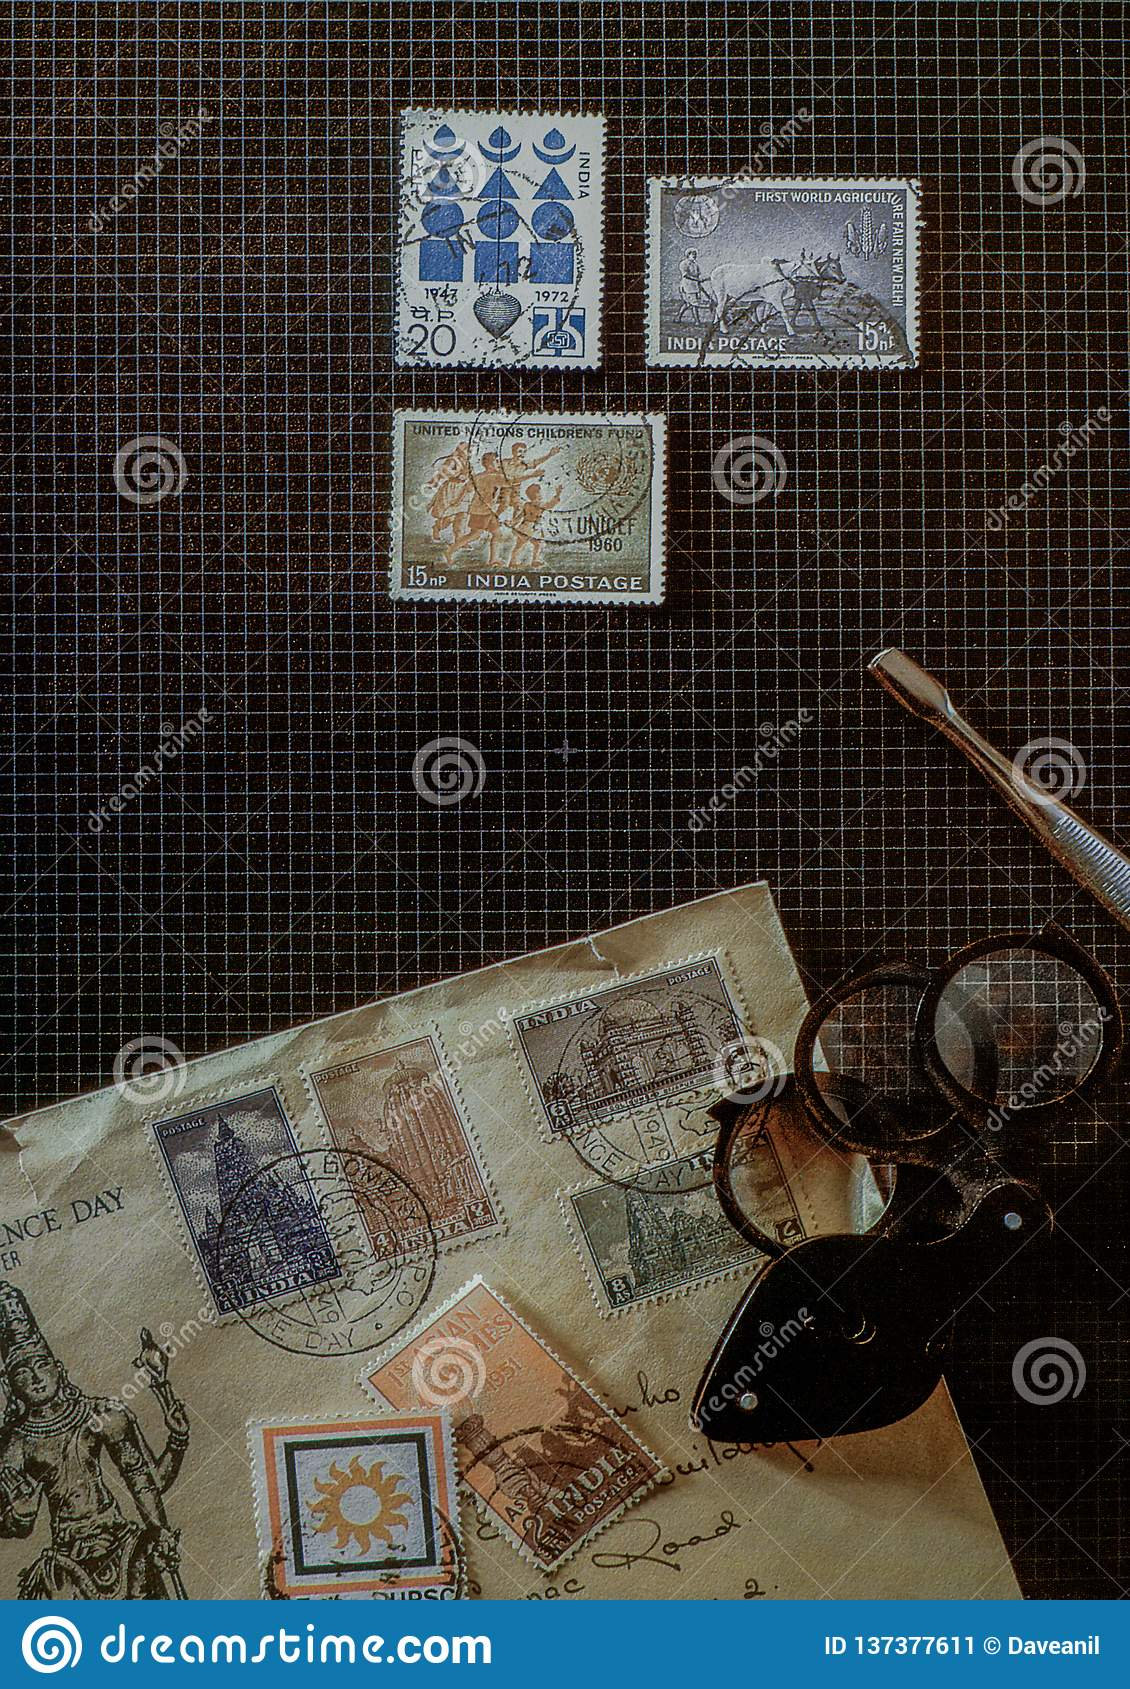 Concept philately postage stamps collectors tools on desk